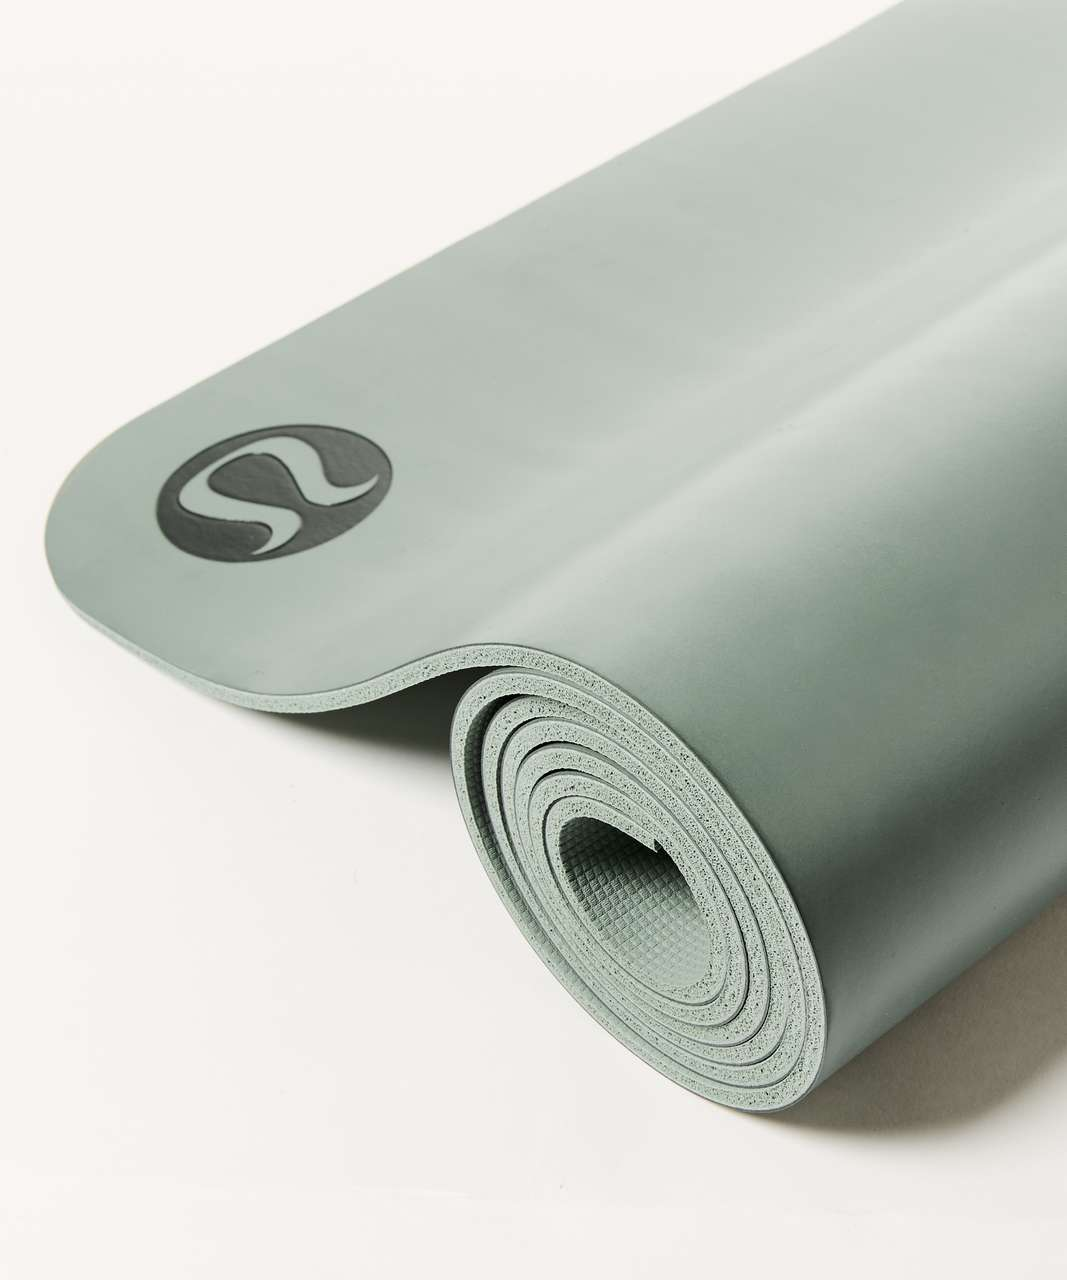 Lululemon The Reversible Mat 5mm (Taryn Toomey Collection) - Earl Grey / Misty Moss